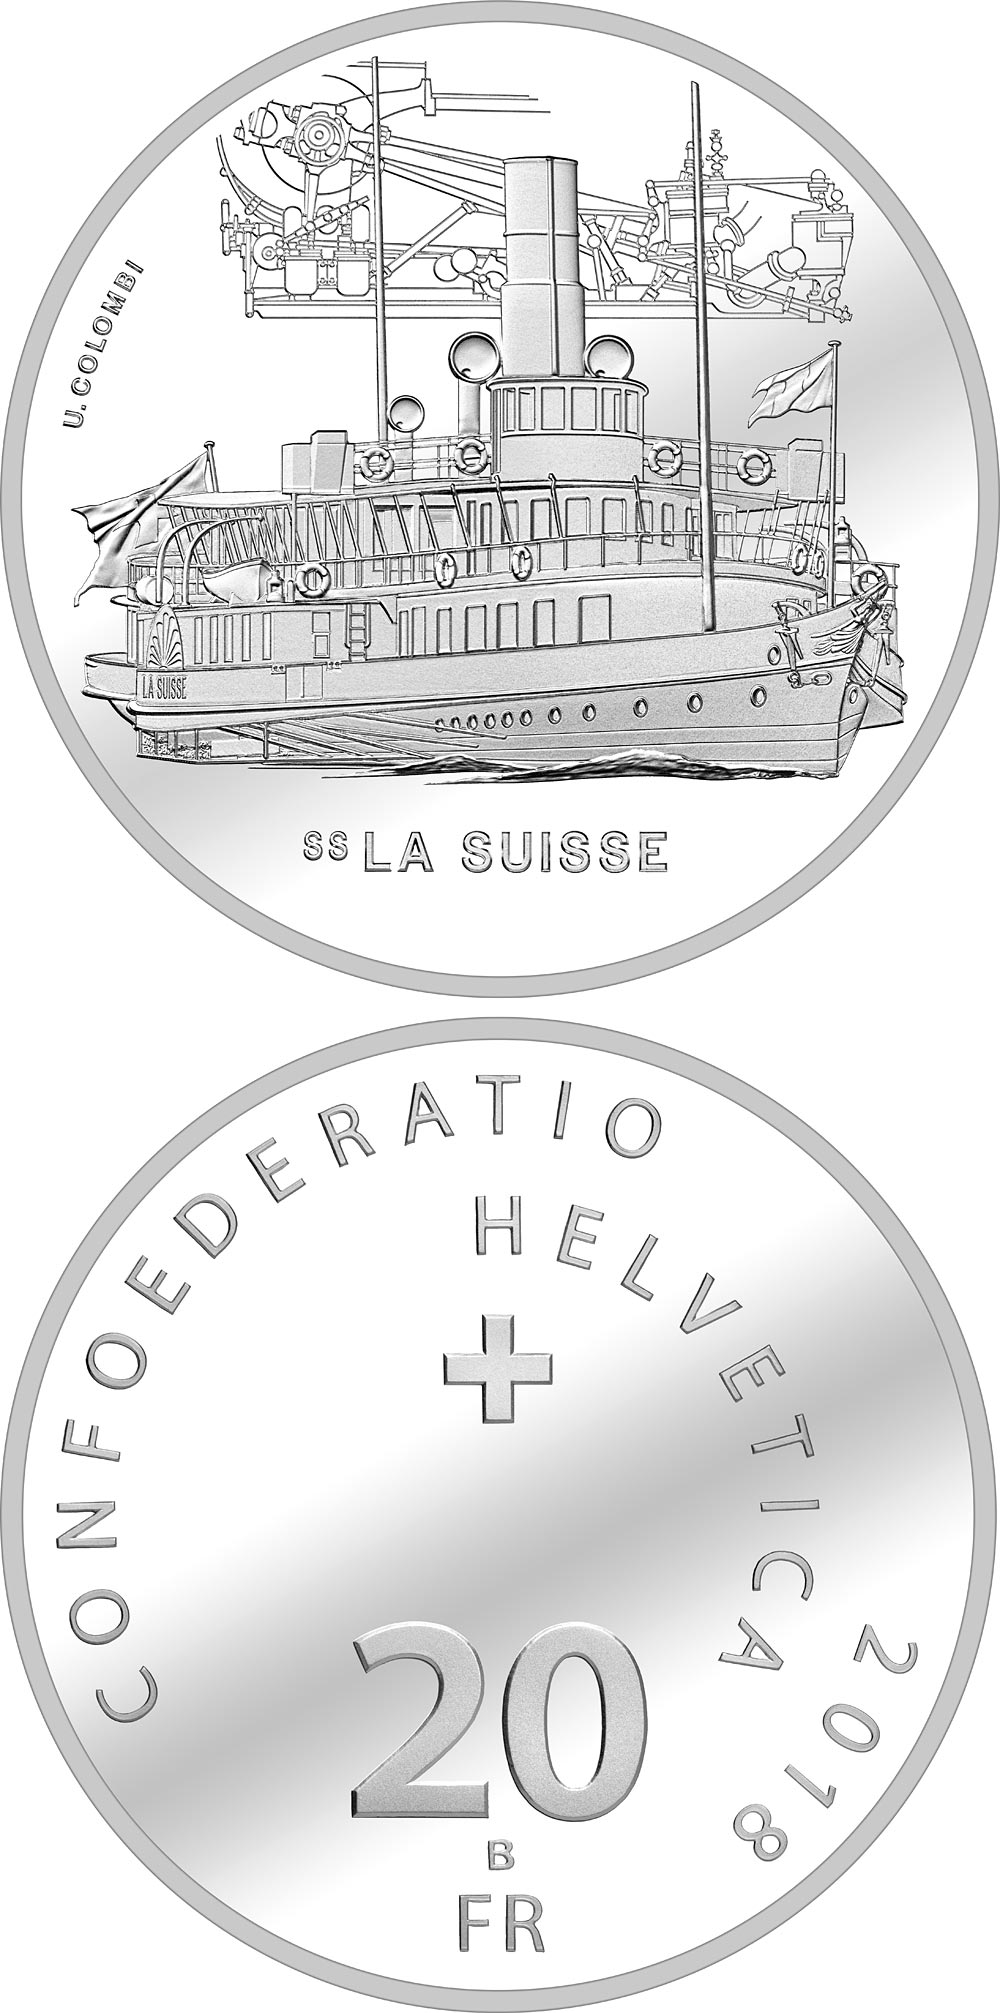 Image of 20 francs coin – La Suisse | Switzerland 2018.  The Silver coin is of Proof, BU quality.